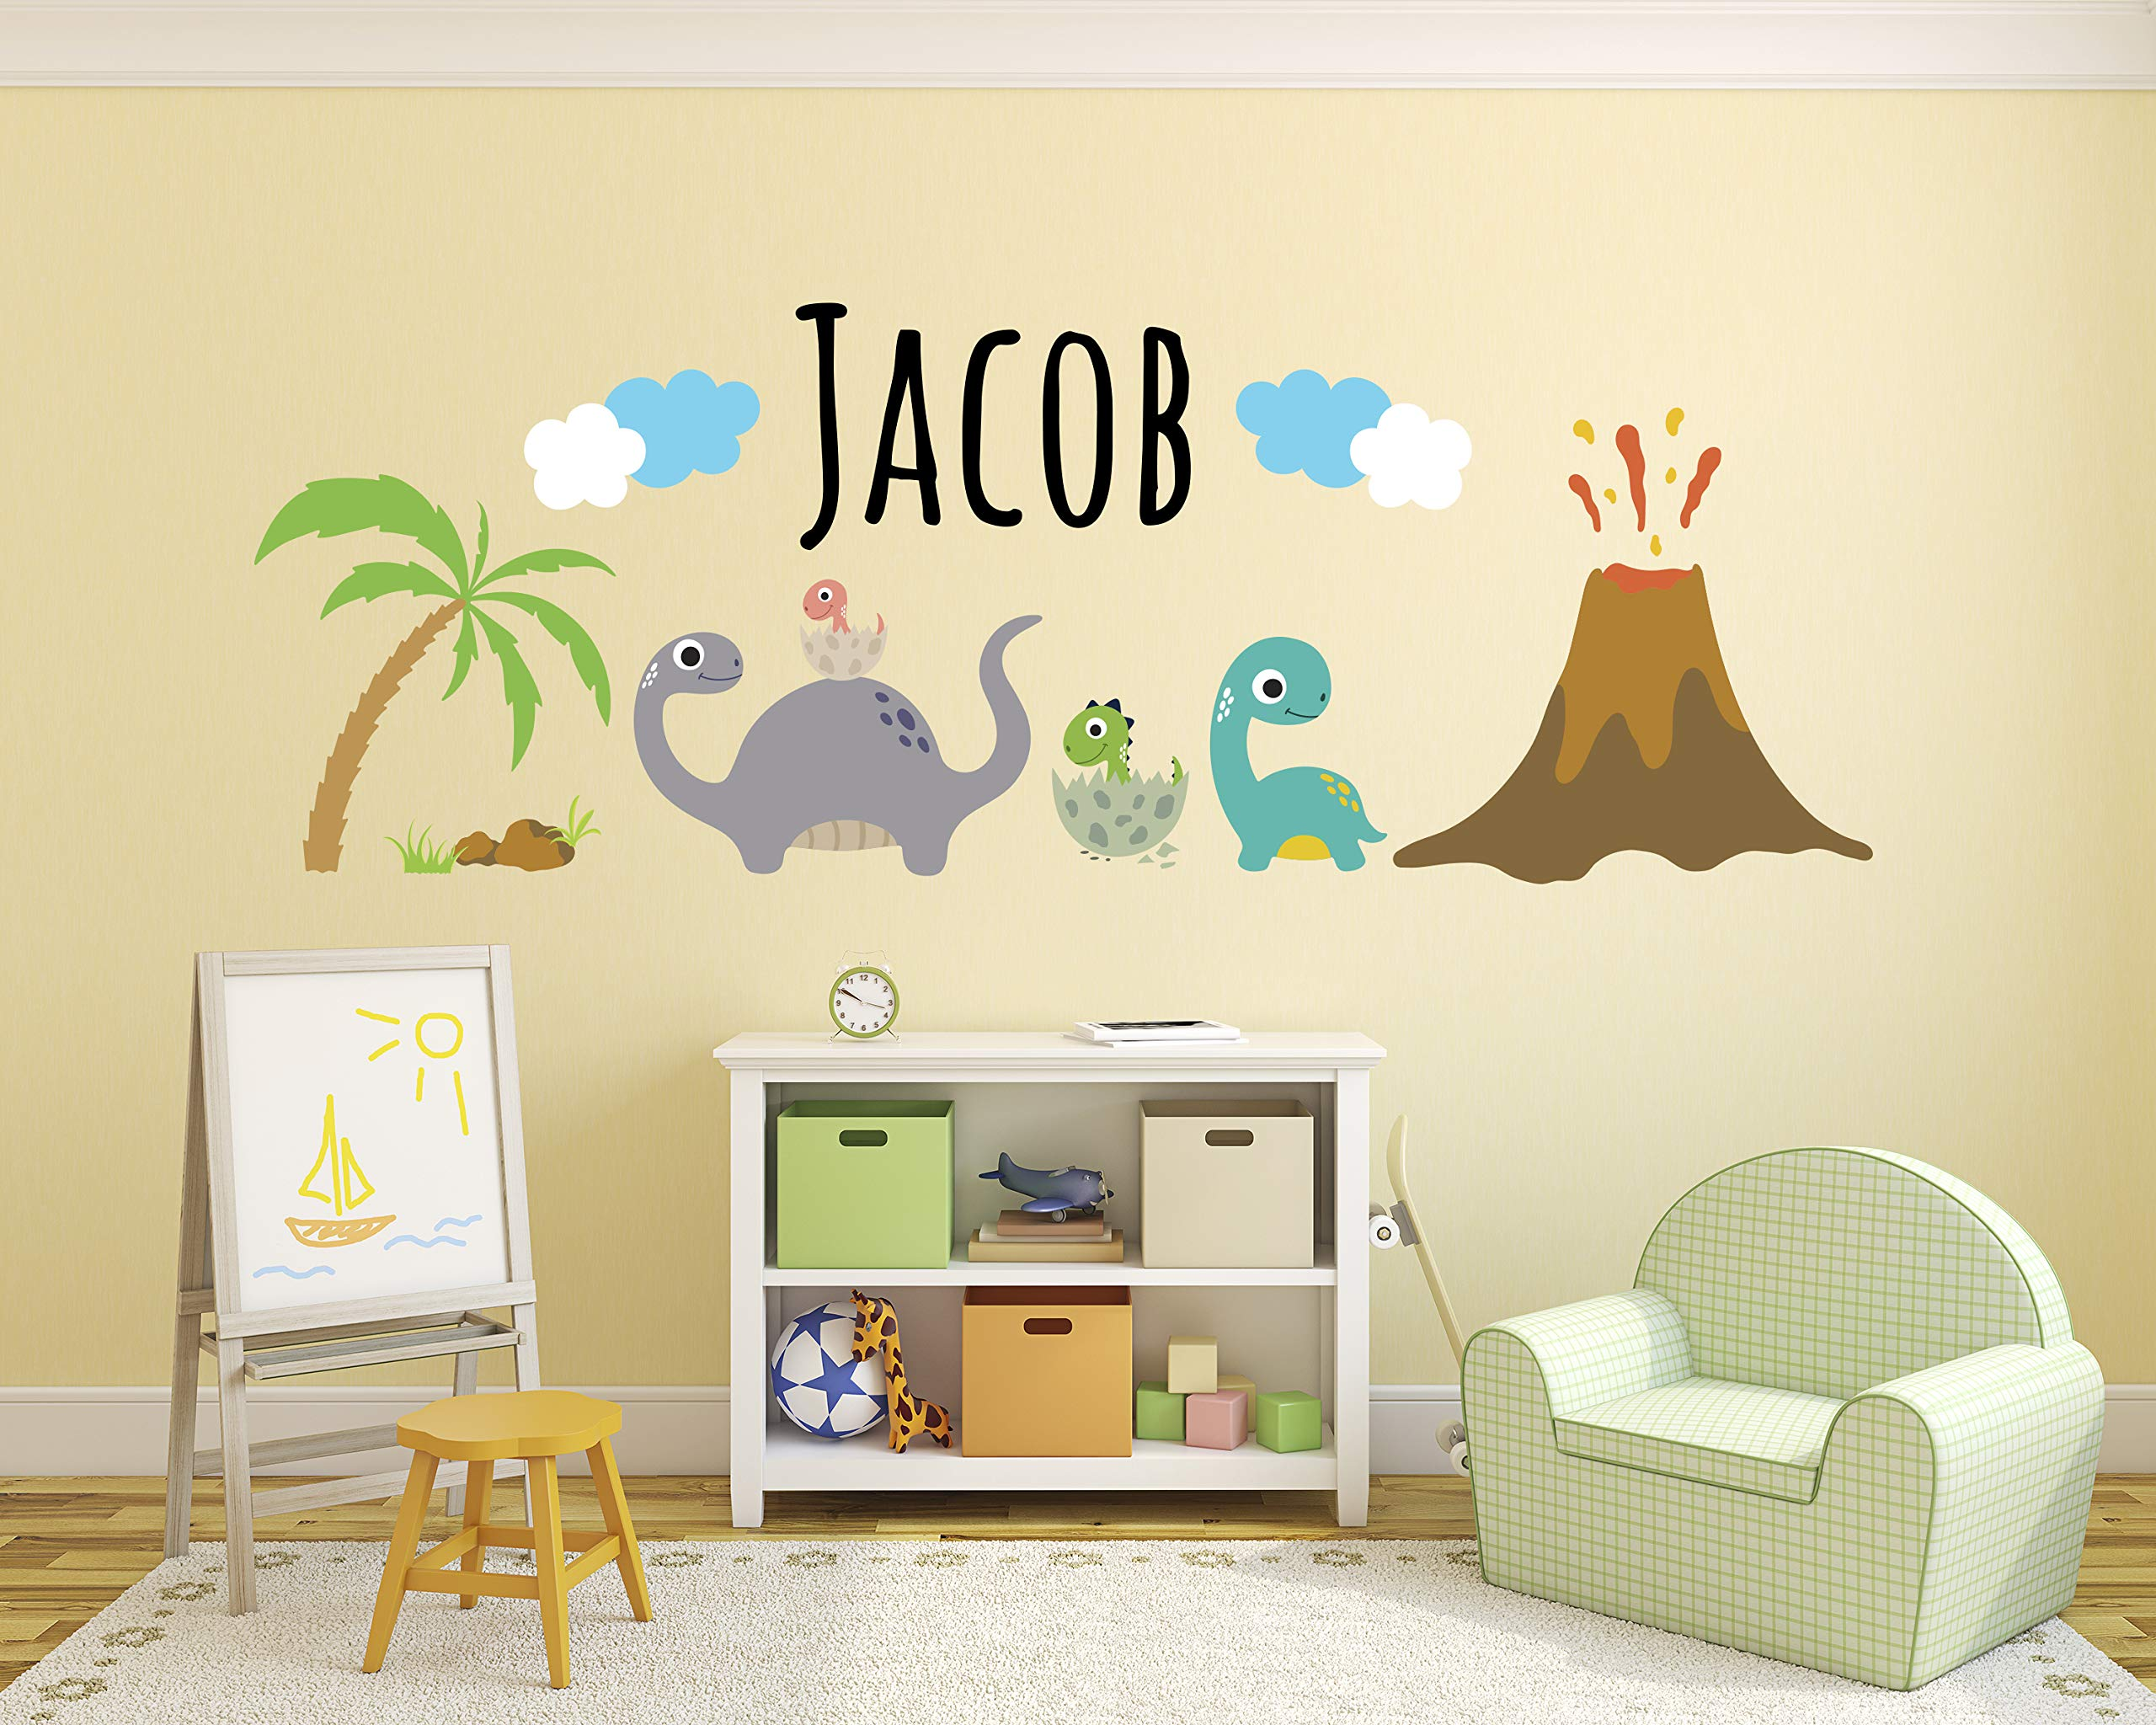 Personalized Dinosaurs Name Wall Decal - Dinosaur Room Decor - Nursery Wall Decals - Dinosaur Volcano Mural Wall Vinyl Sticker (80'' x 30'') by Decalzone Inc